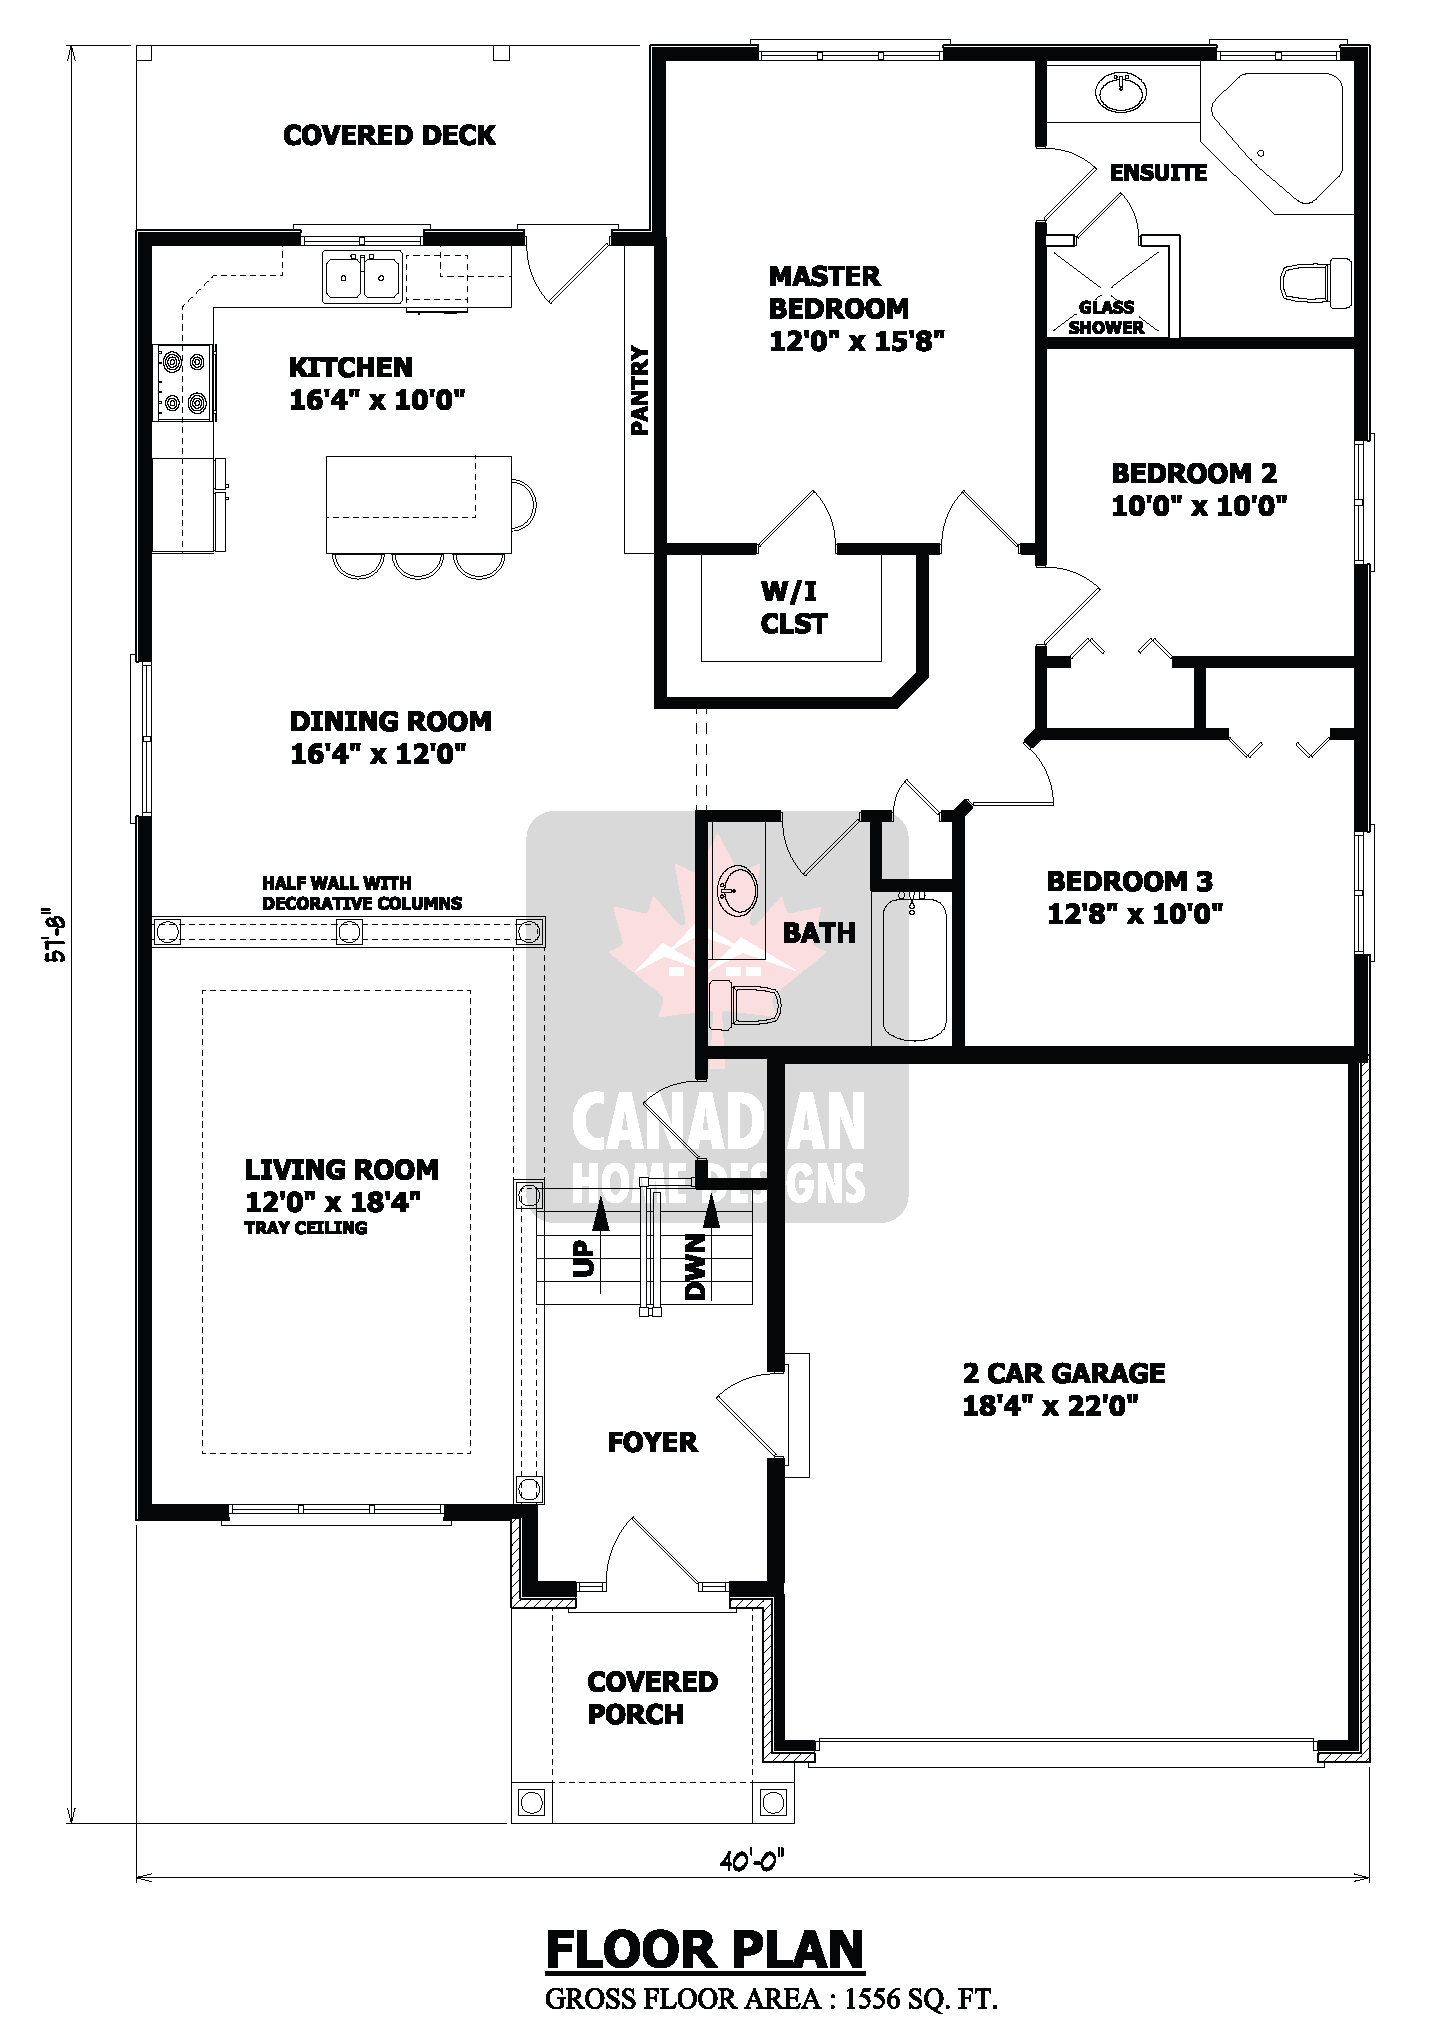 tiny house floor plans house plans home plans floor plan collections and custom - Floor Plans For Small Houses